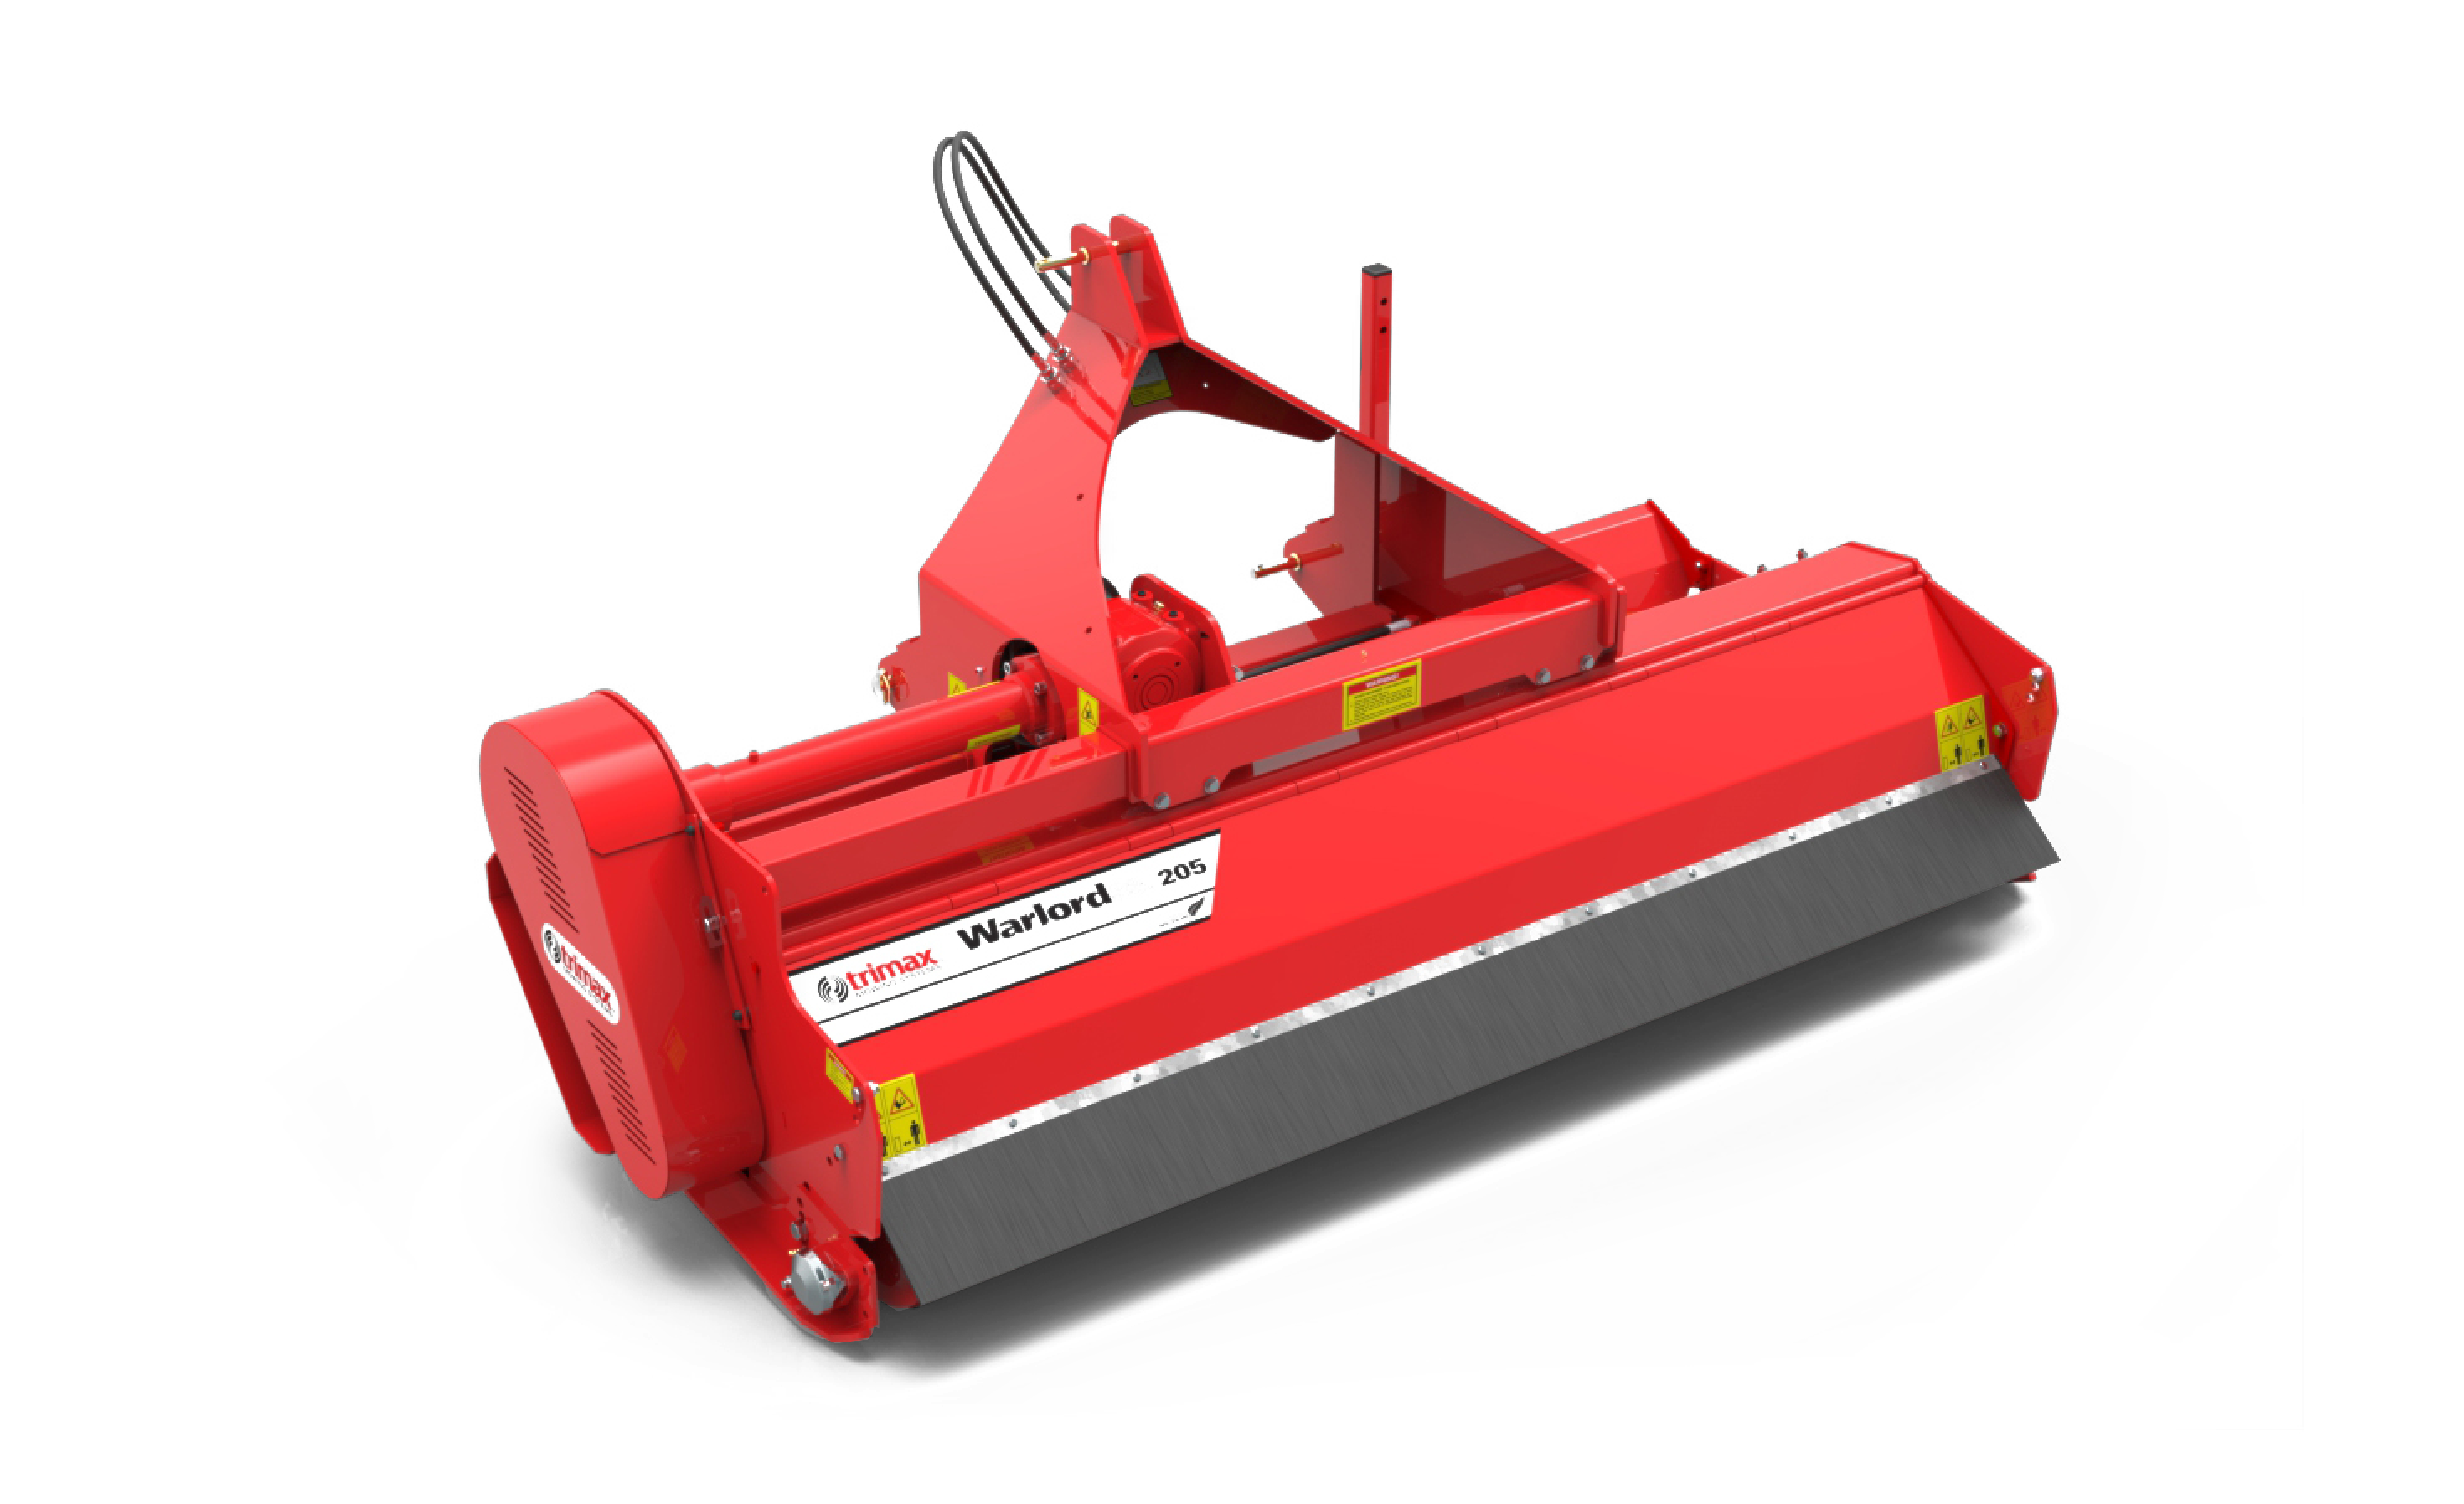 Warlord S3 205 mower front view red